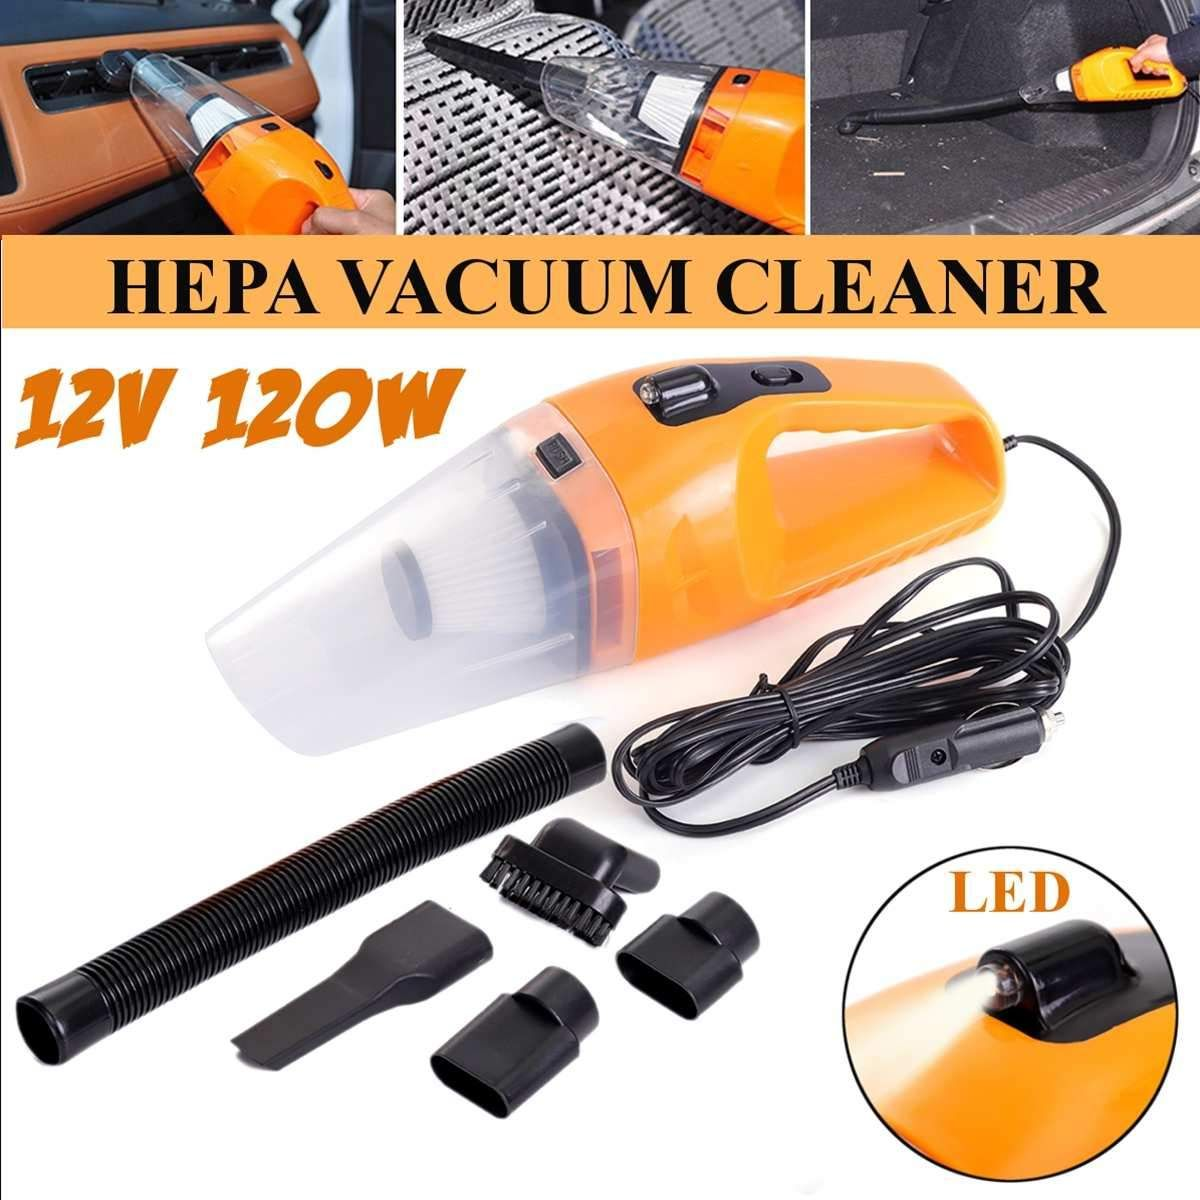 Portable Car Vacuum Handheld Vacuums Portable Vacuum Cleaner Vacuum Cleaner Car Vacuum